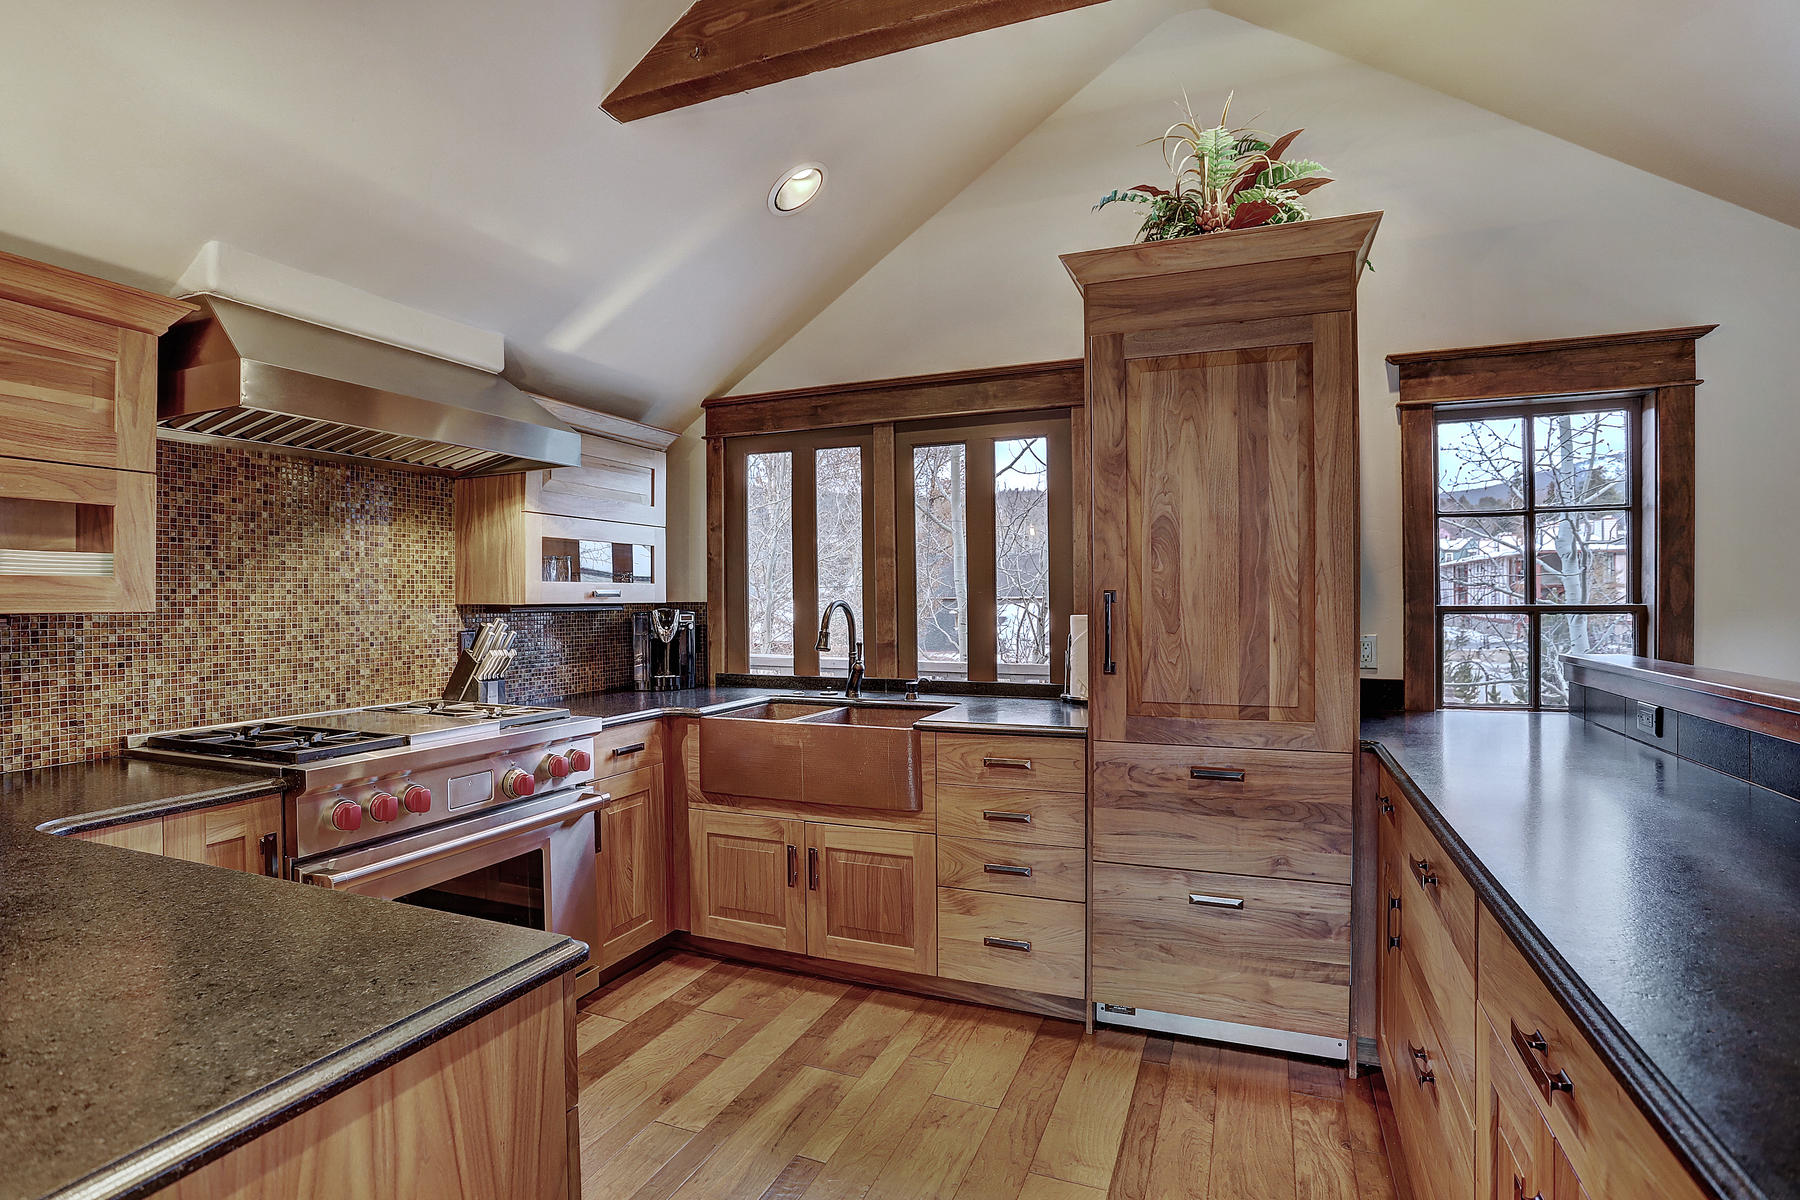 Additional photo for property listing at The Gondola House 301 N Main Street Breckenridge, Colorado 80424 United States